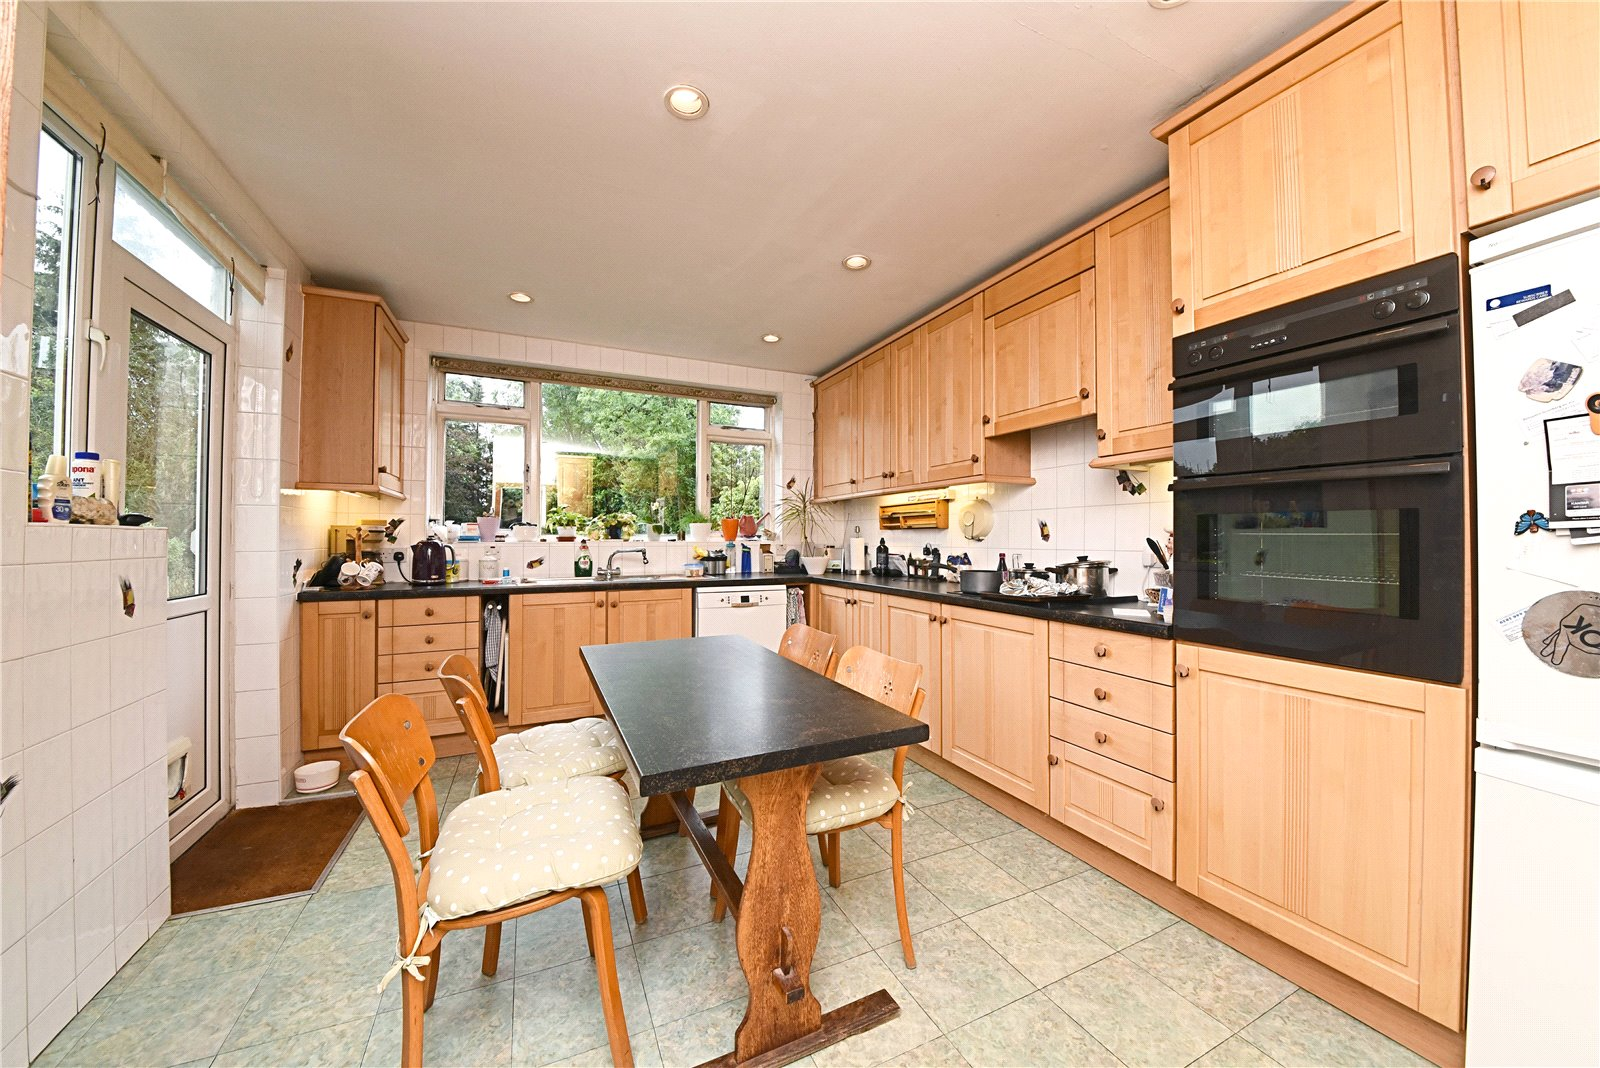 4 bed house for sale in Whetstone, N20 9ED - Property Image 1